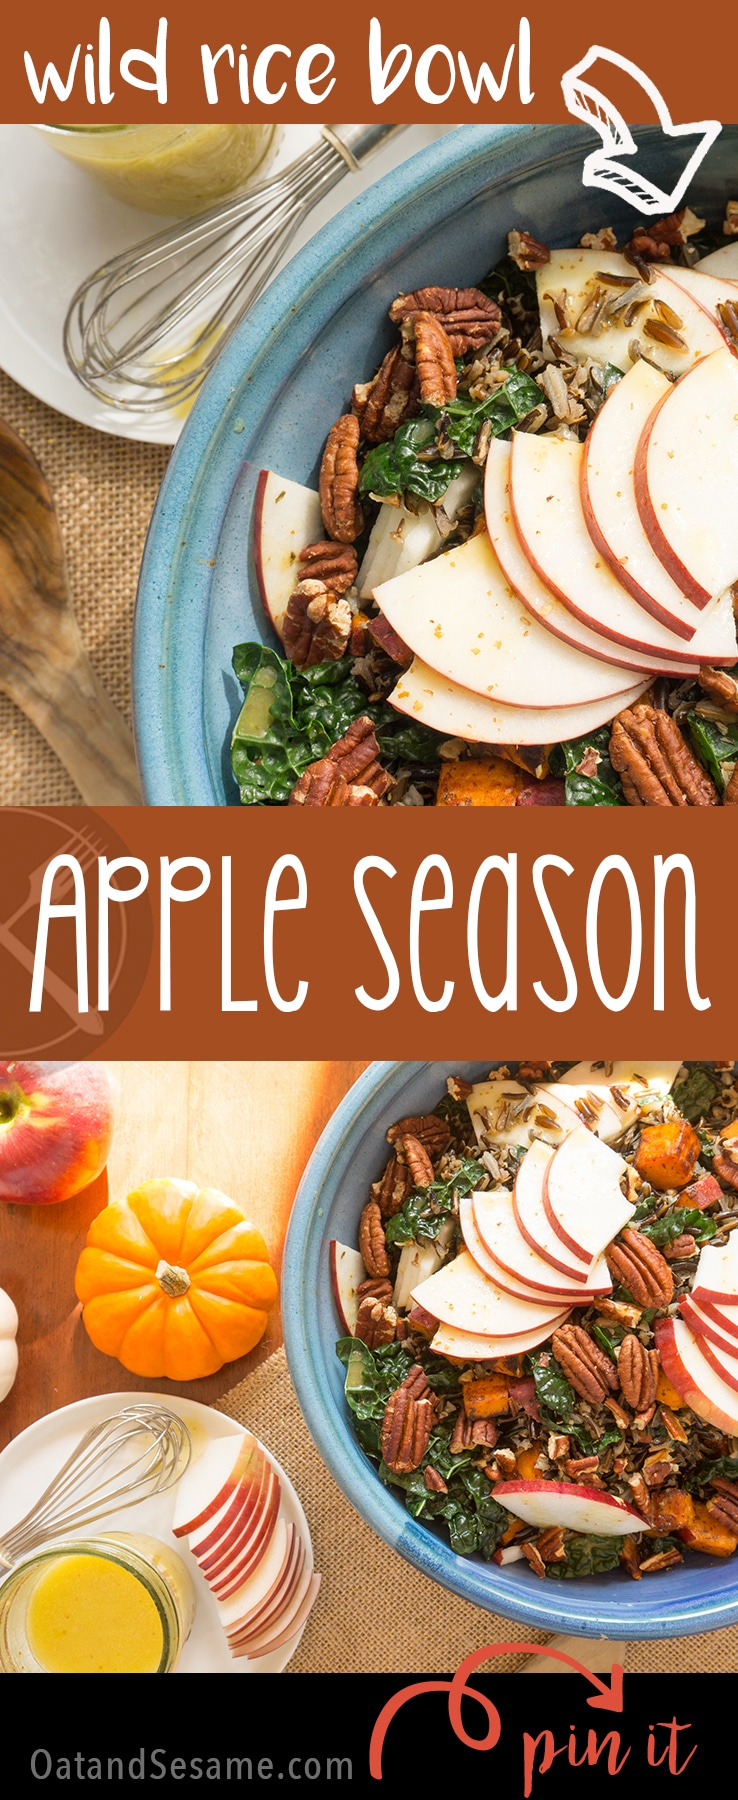 Wild Rice with Apples, Kale and Cider Vinaigrette is my most favorite fall creation yet! Full of greens and packed with apple flavors, it's an irresistible combination | SALAD | WILD RICE | FALL | APPLES | Recipe at OatandSesame.com